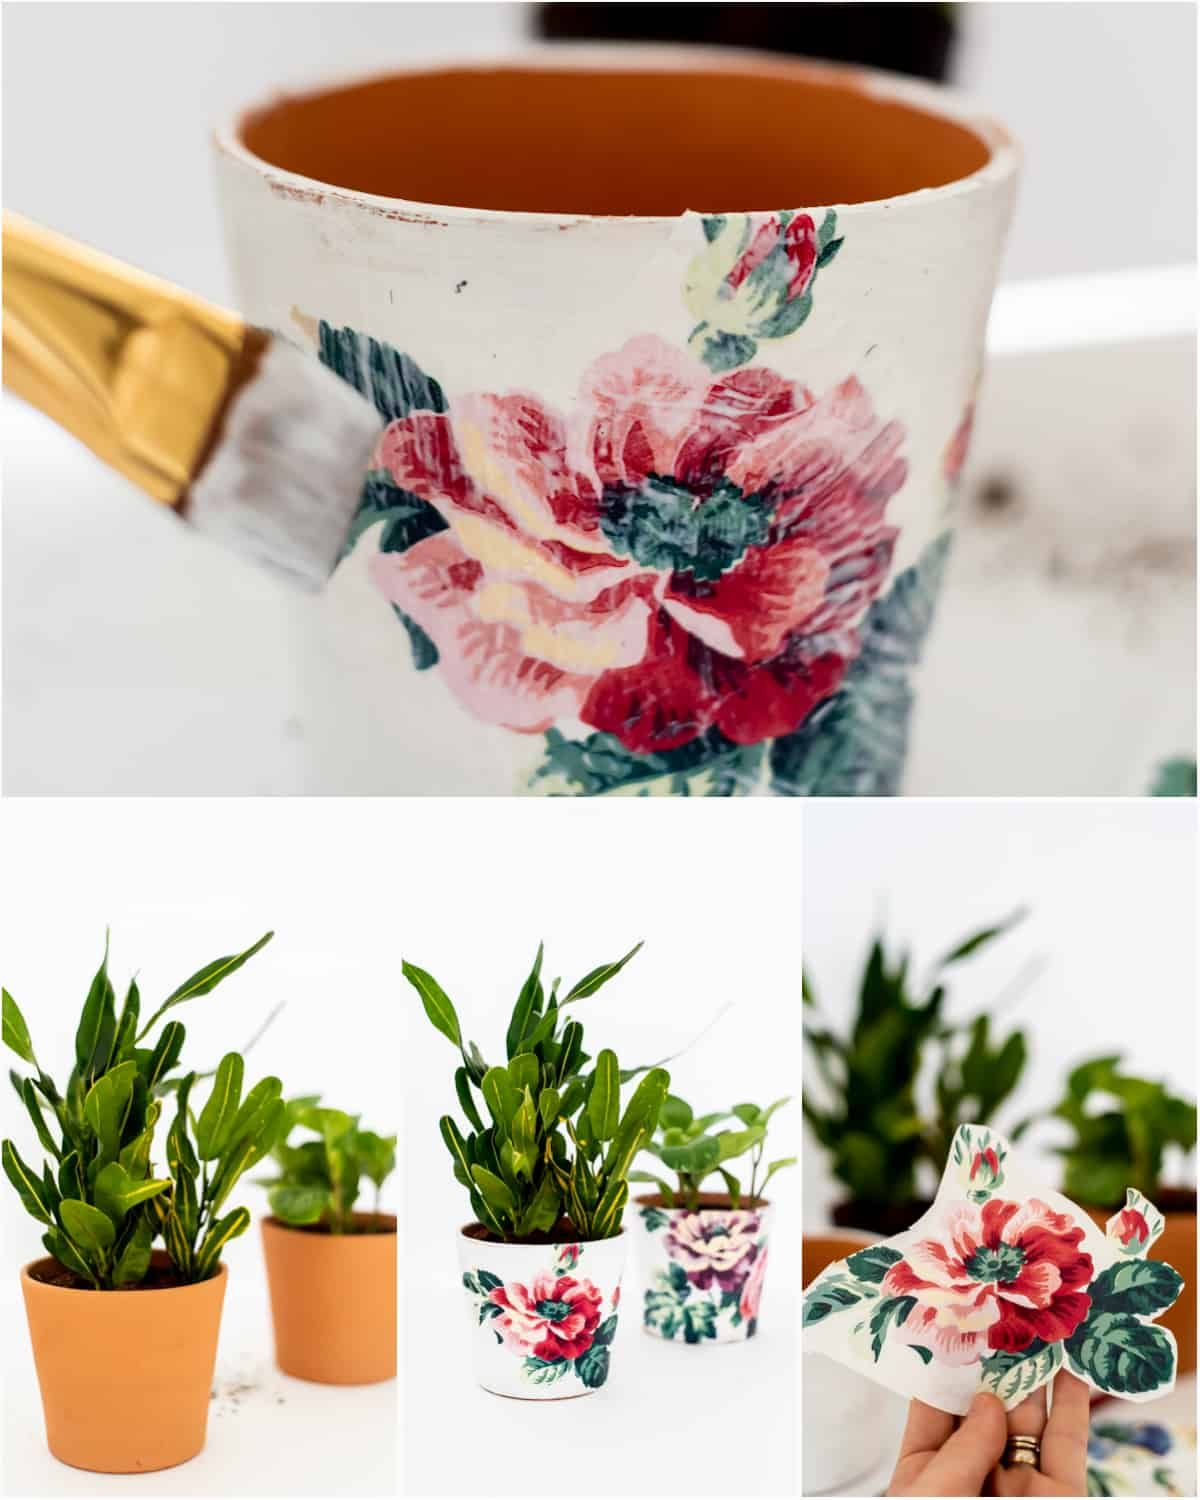 HOW TO DECOUPAGE WITH NAPKINS - DECOUPAGE PLANTER #diycrafts